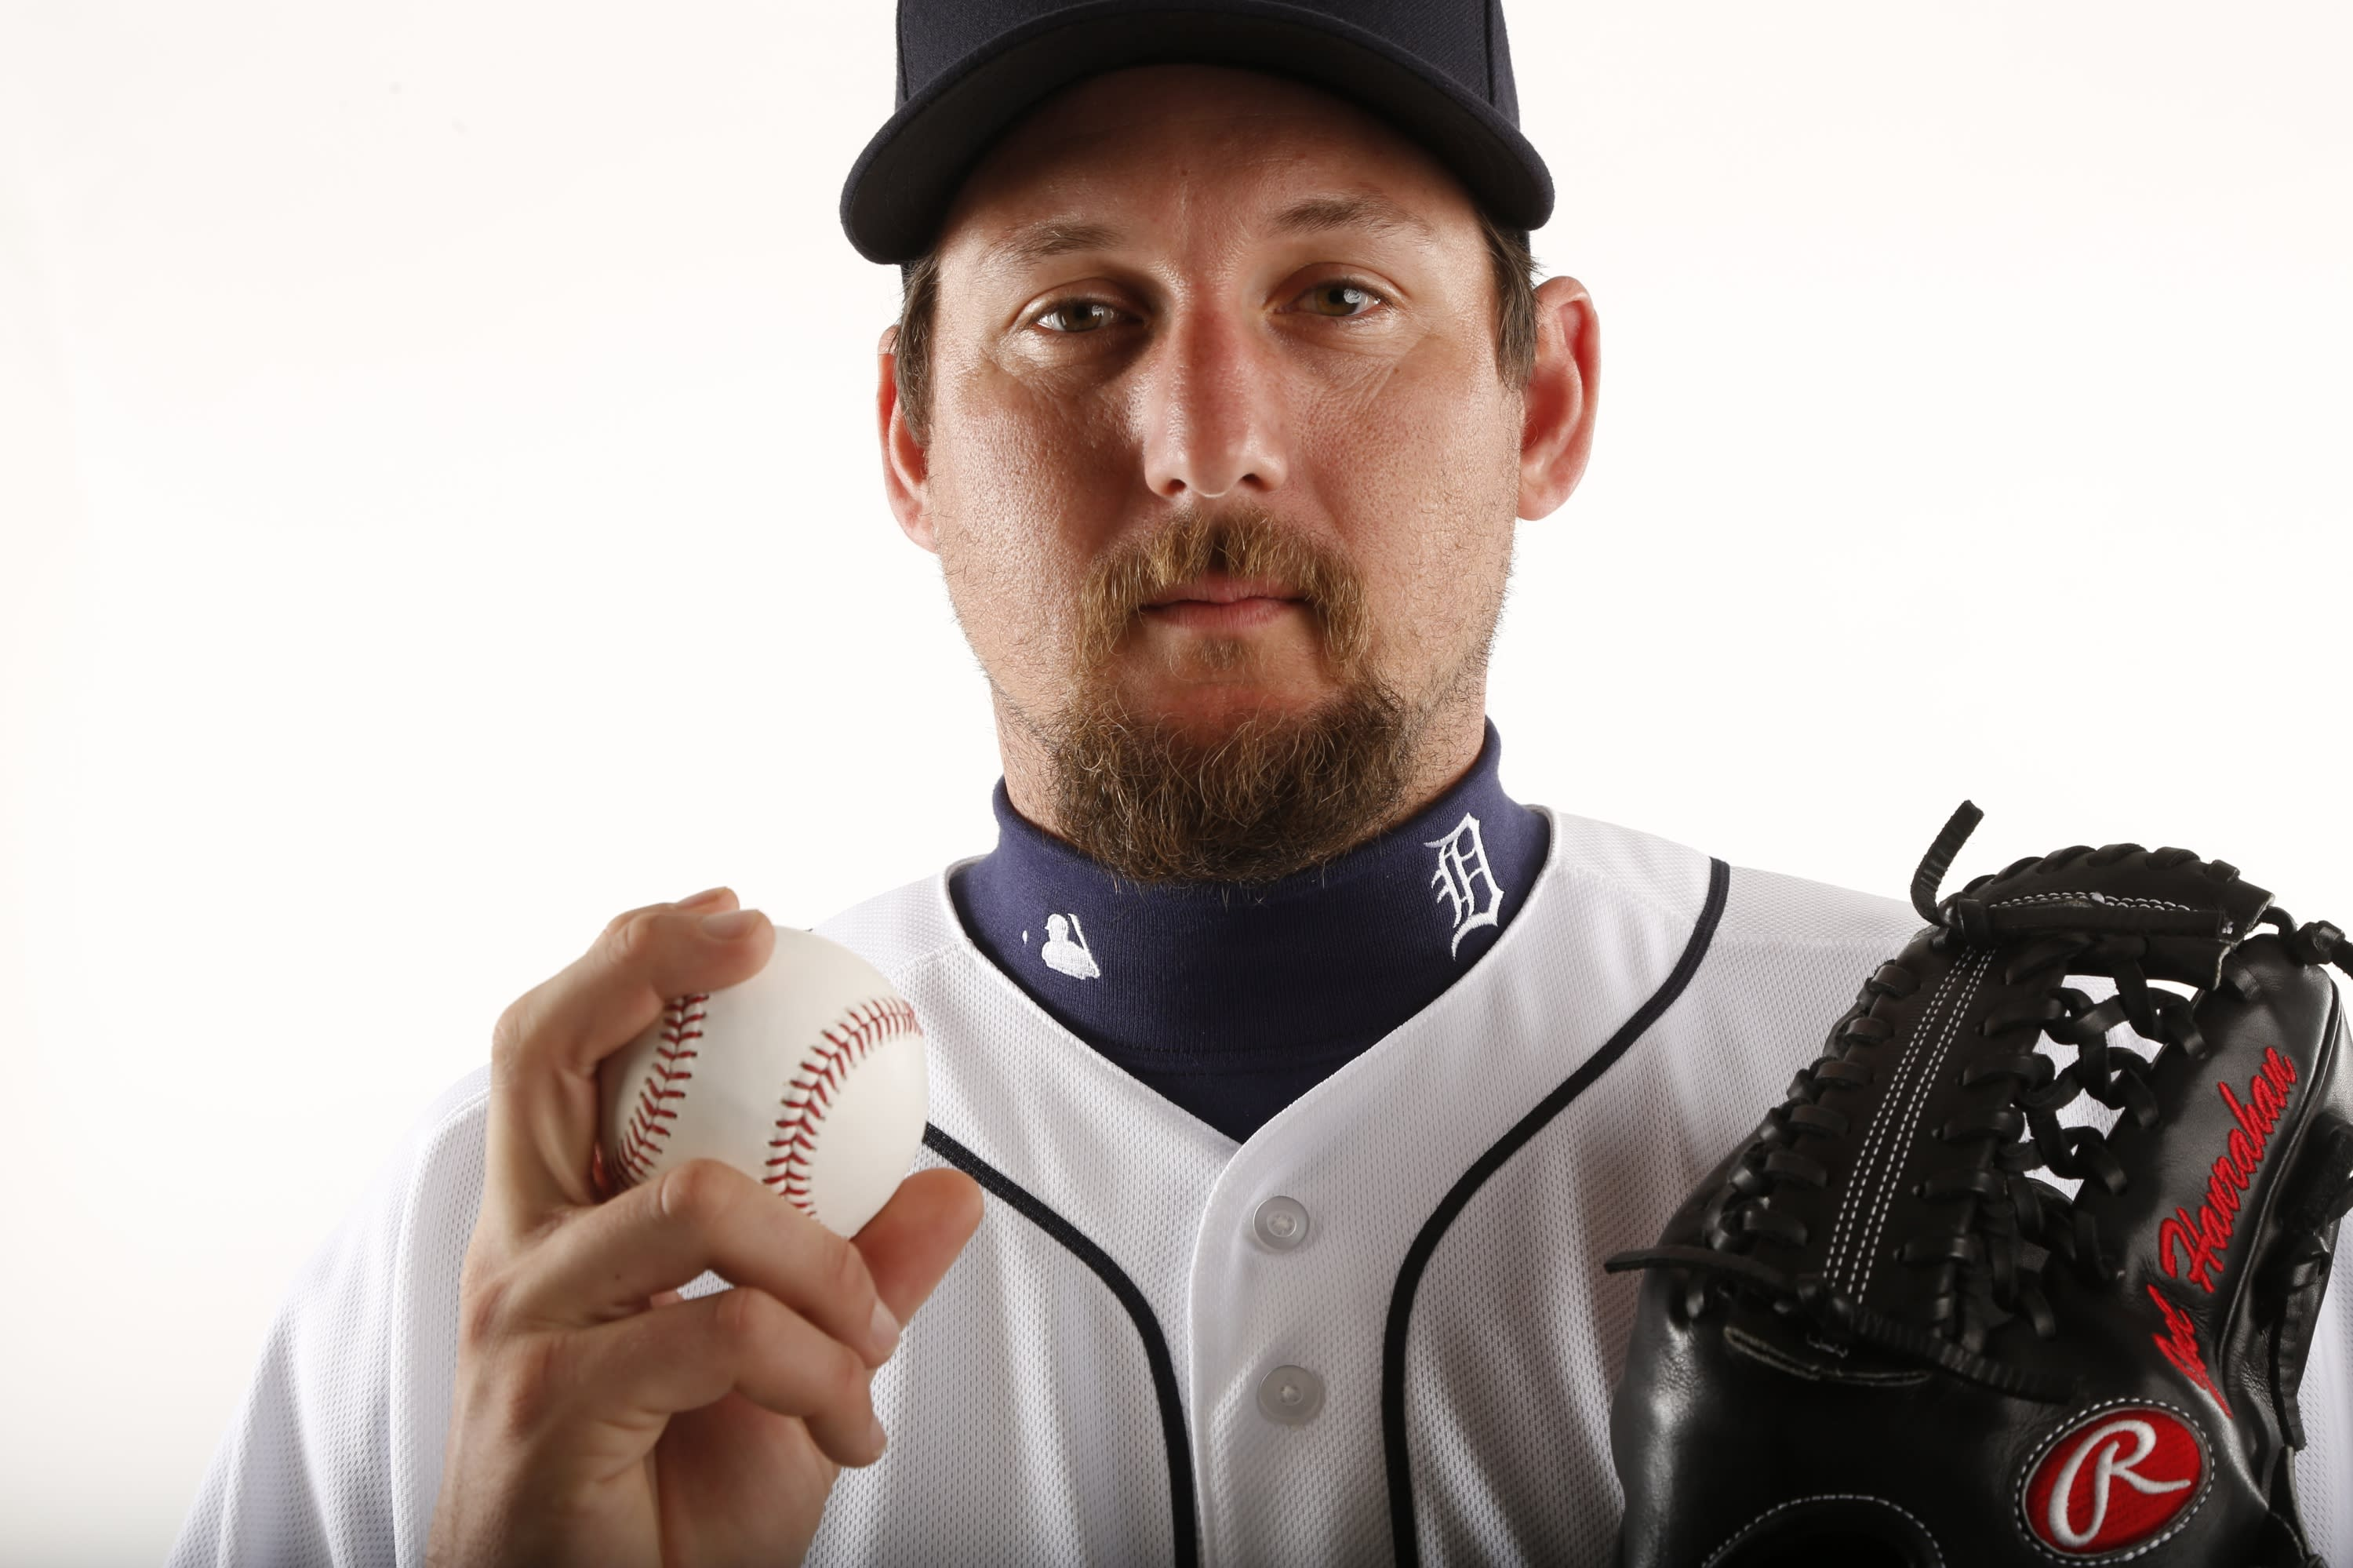 Joel Hanrahan needs Tommy John surgery again, so Tigers release him